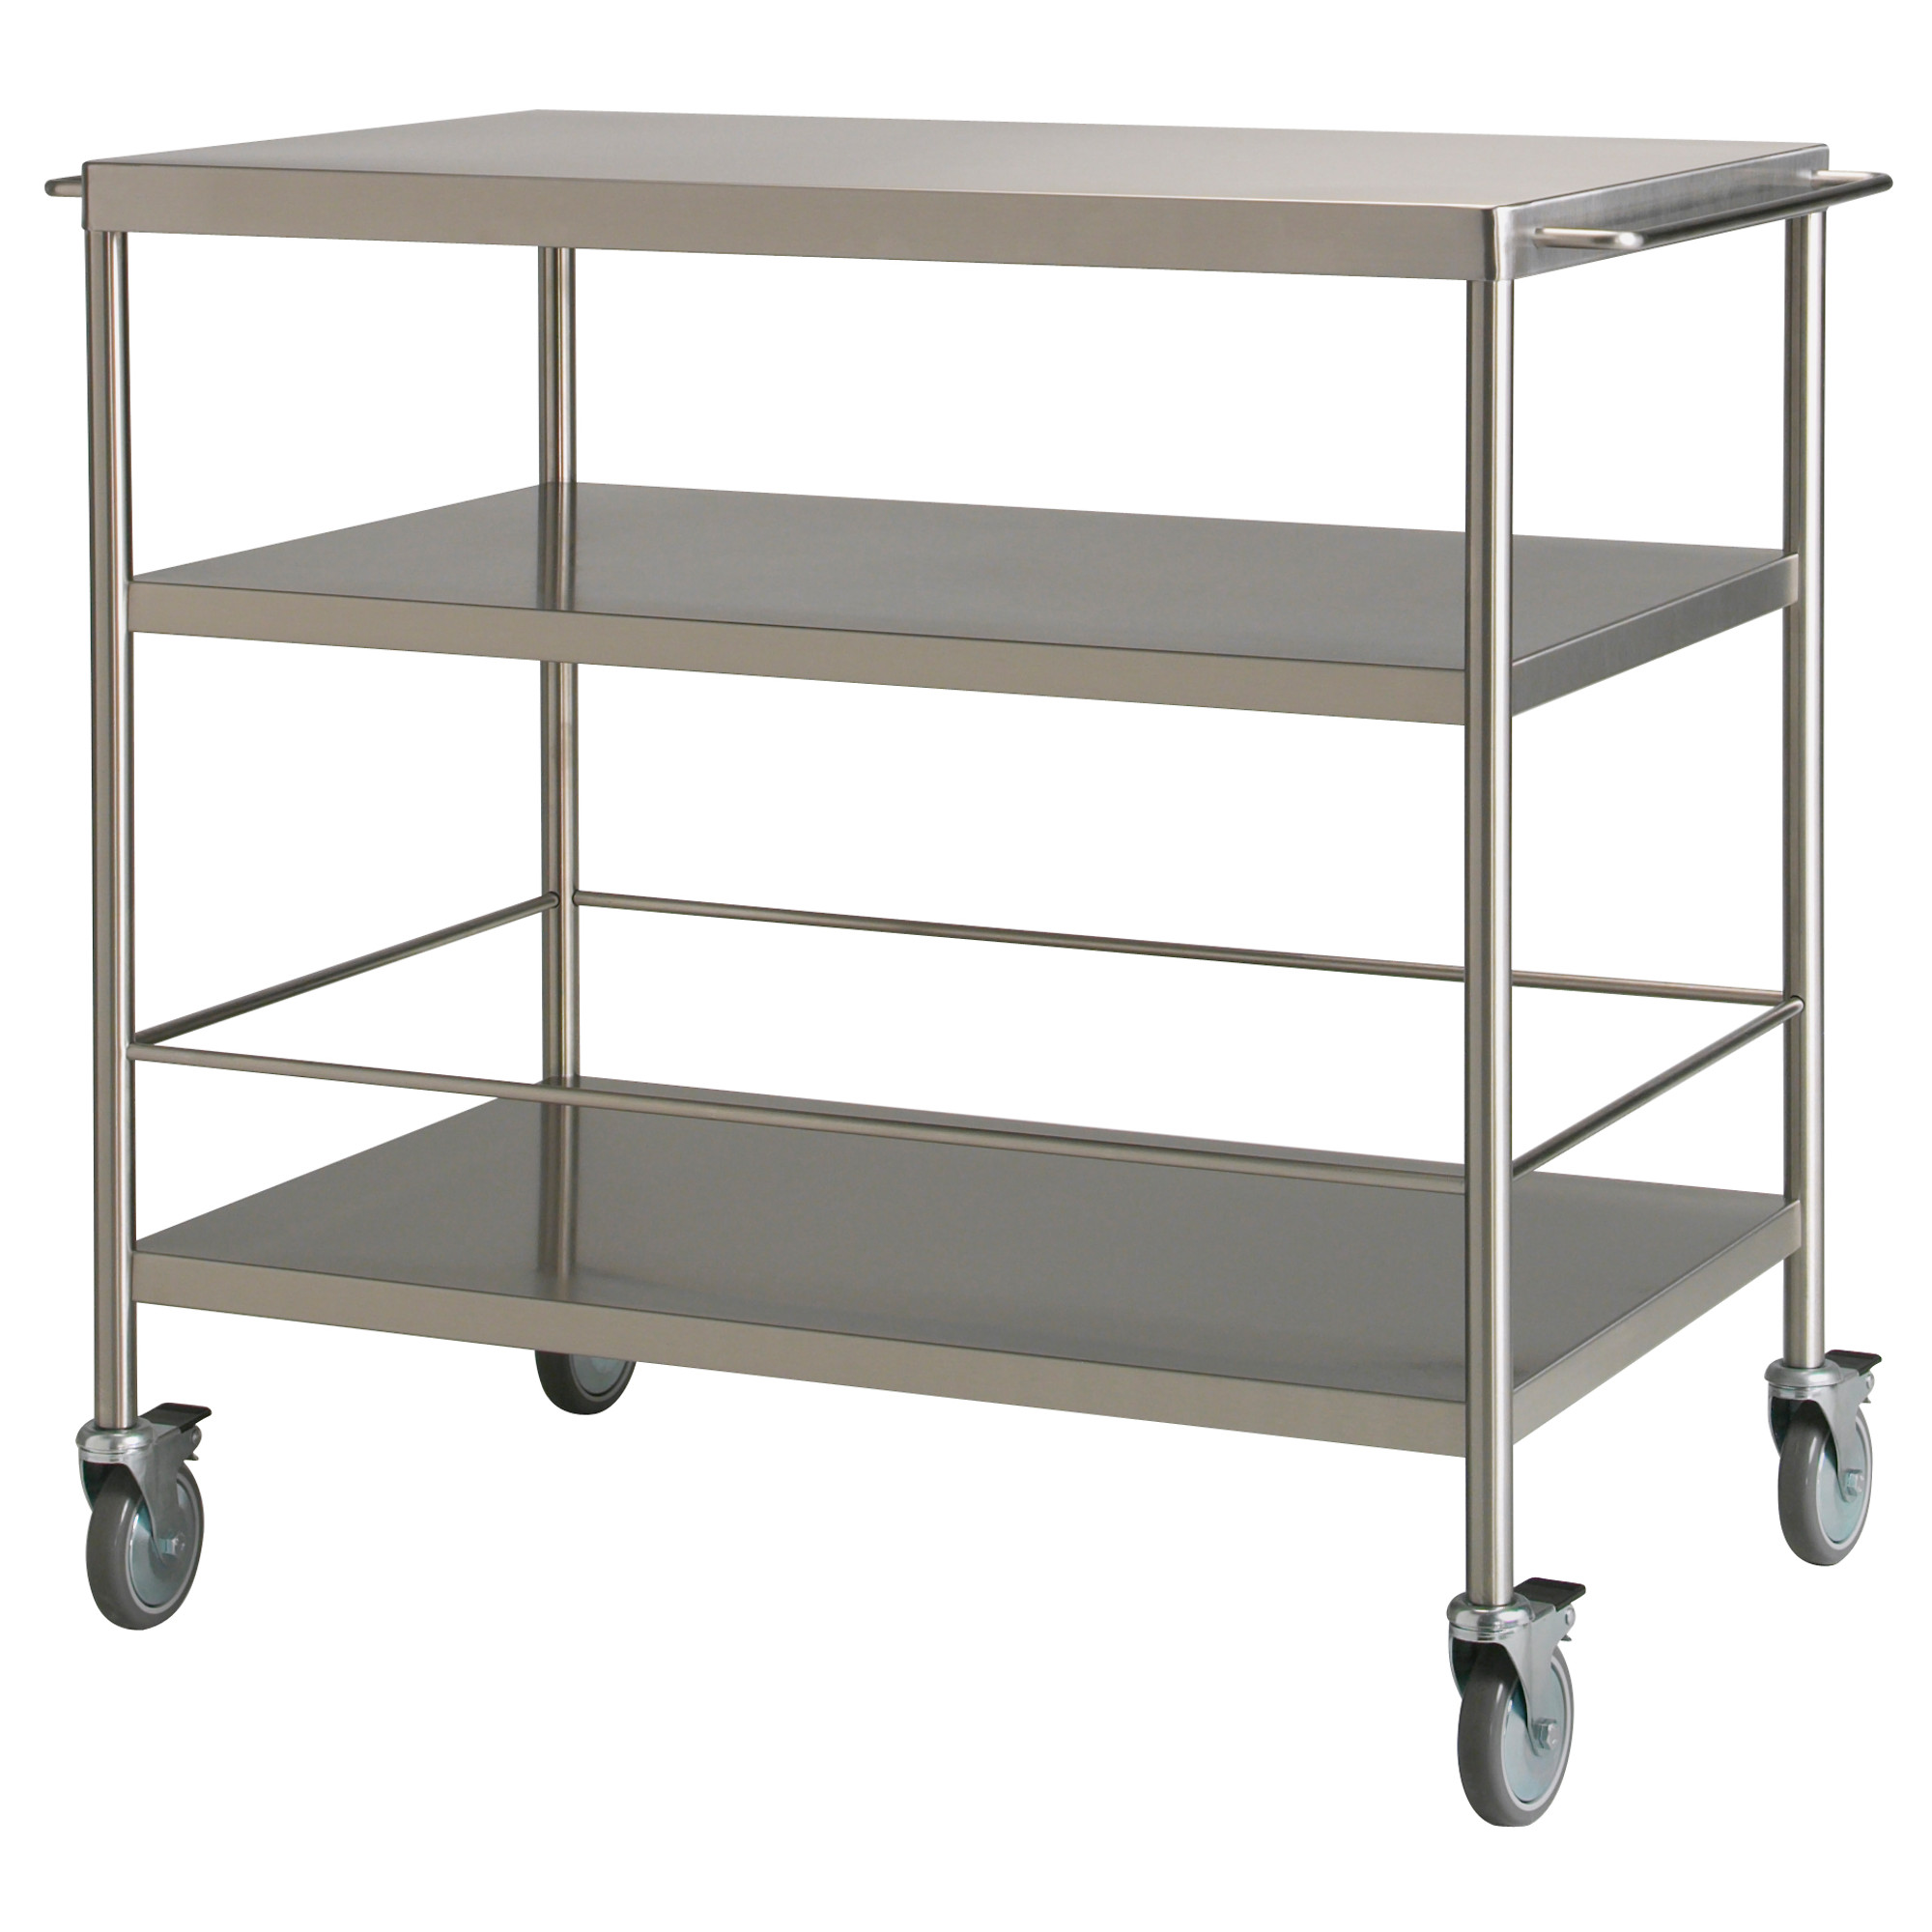 Comfy microwave cart ikea for kitchen with microwave cart with storage ikea